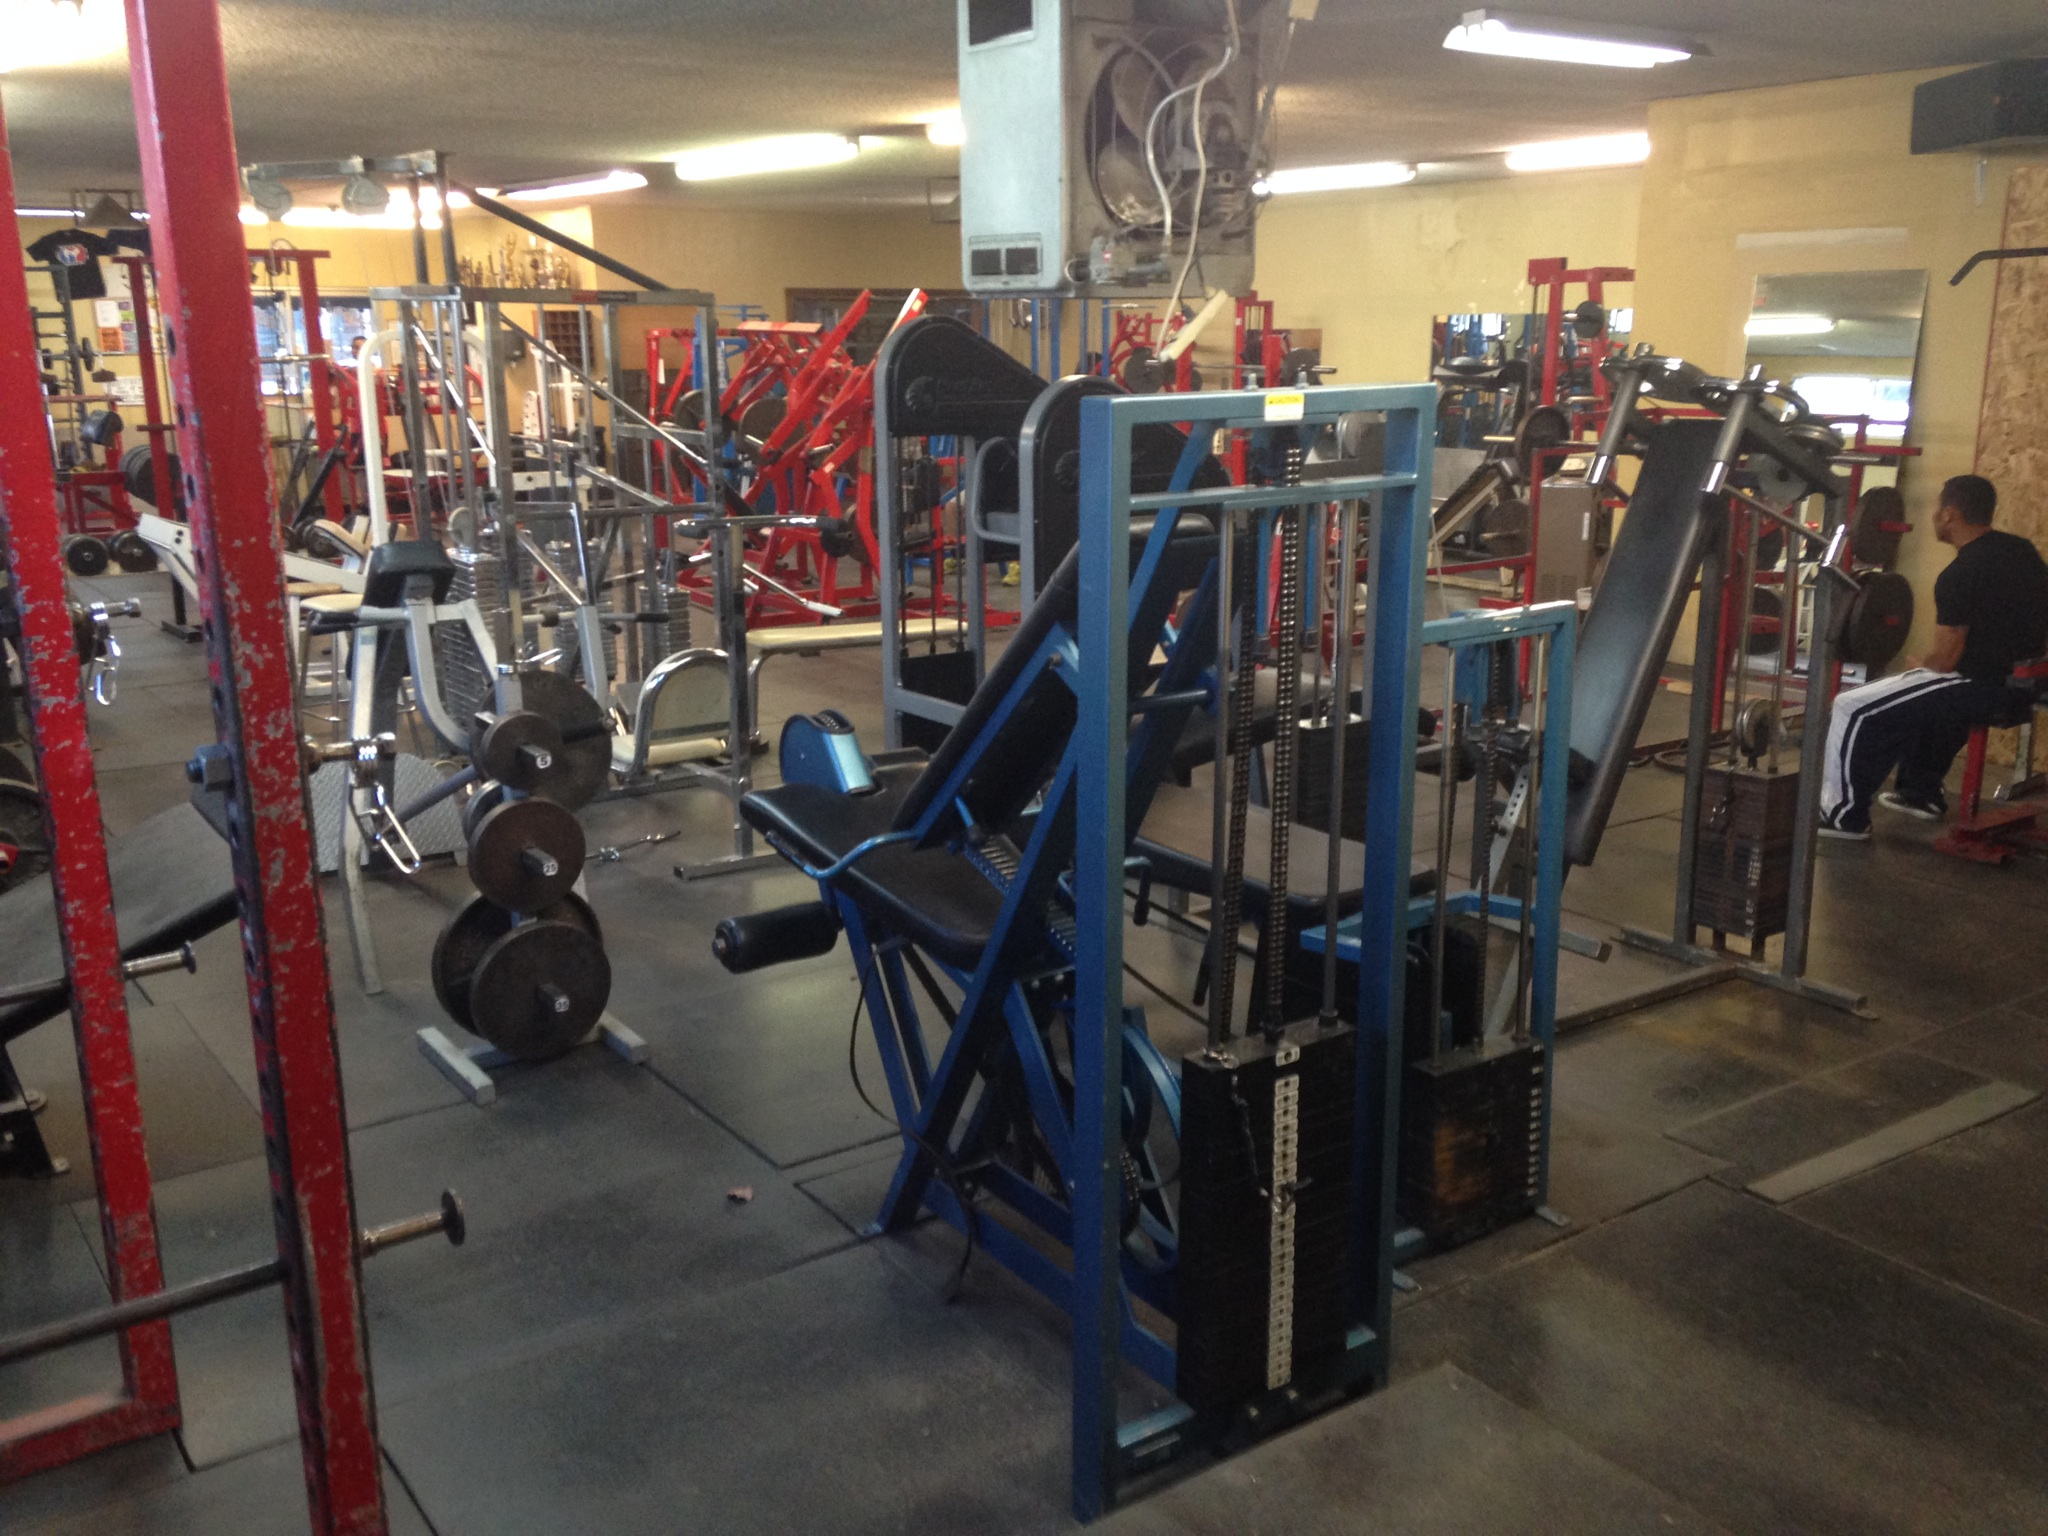 Strength Amp Health Gym 318 21st St Bakersfield Ca 93301